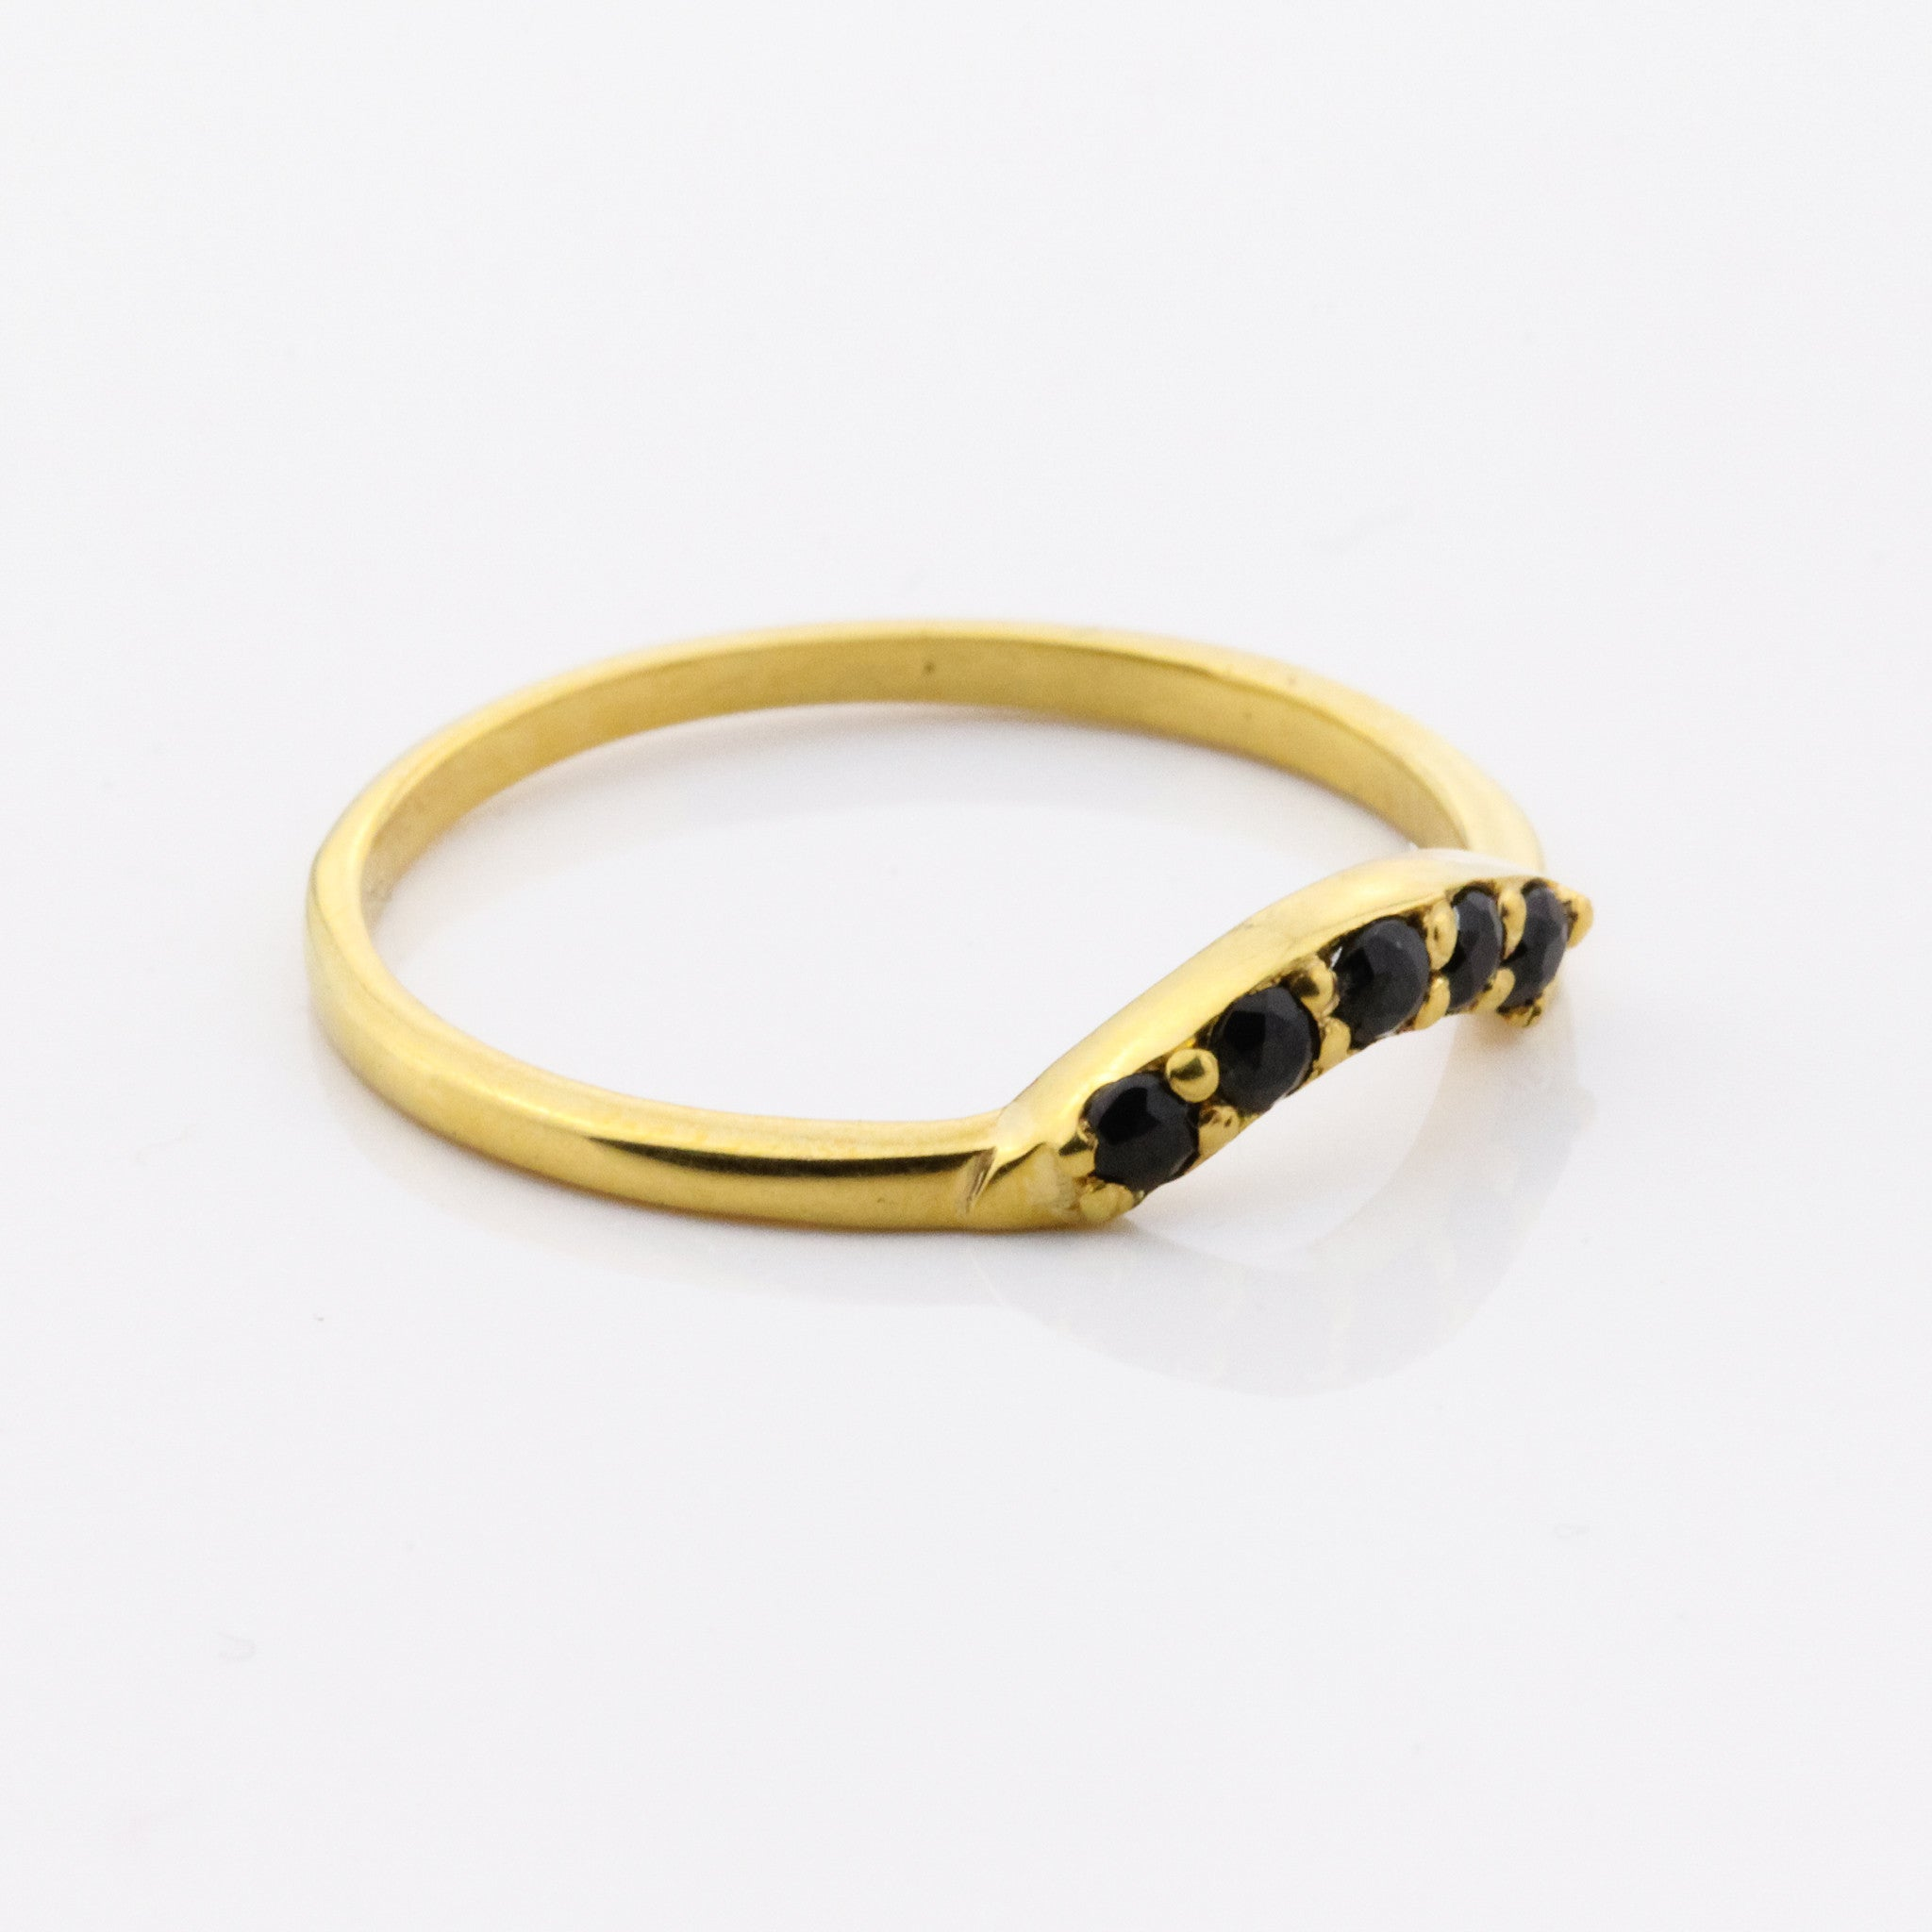 5 Stone Arch Ring - Black Quartz and Yellow Gold